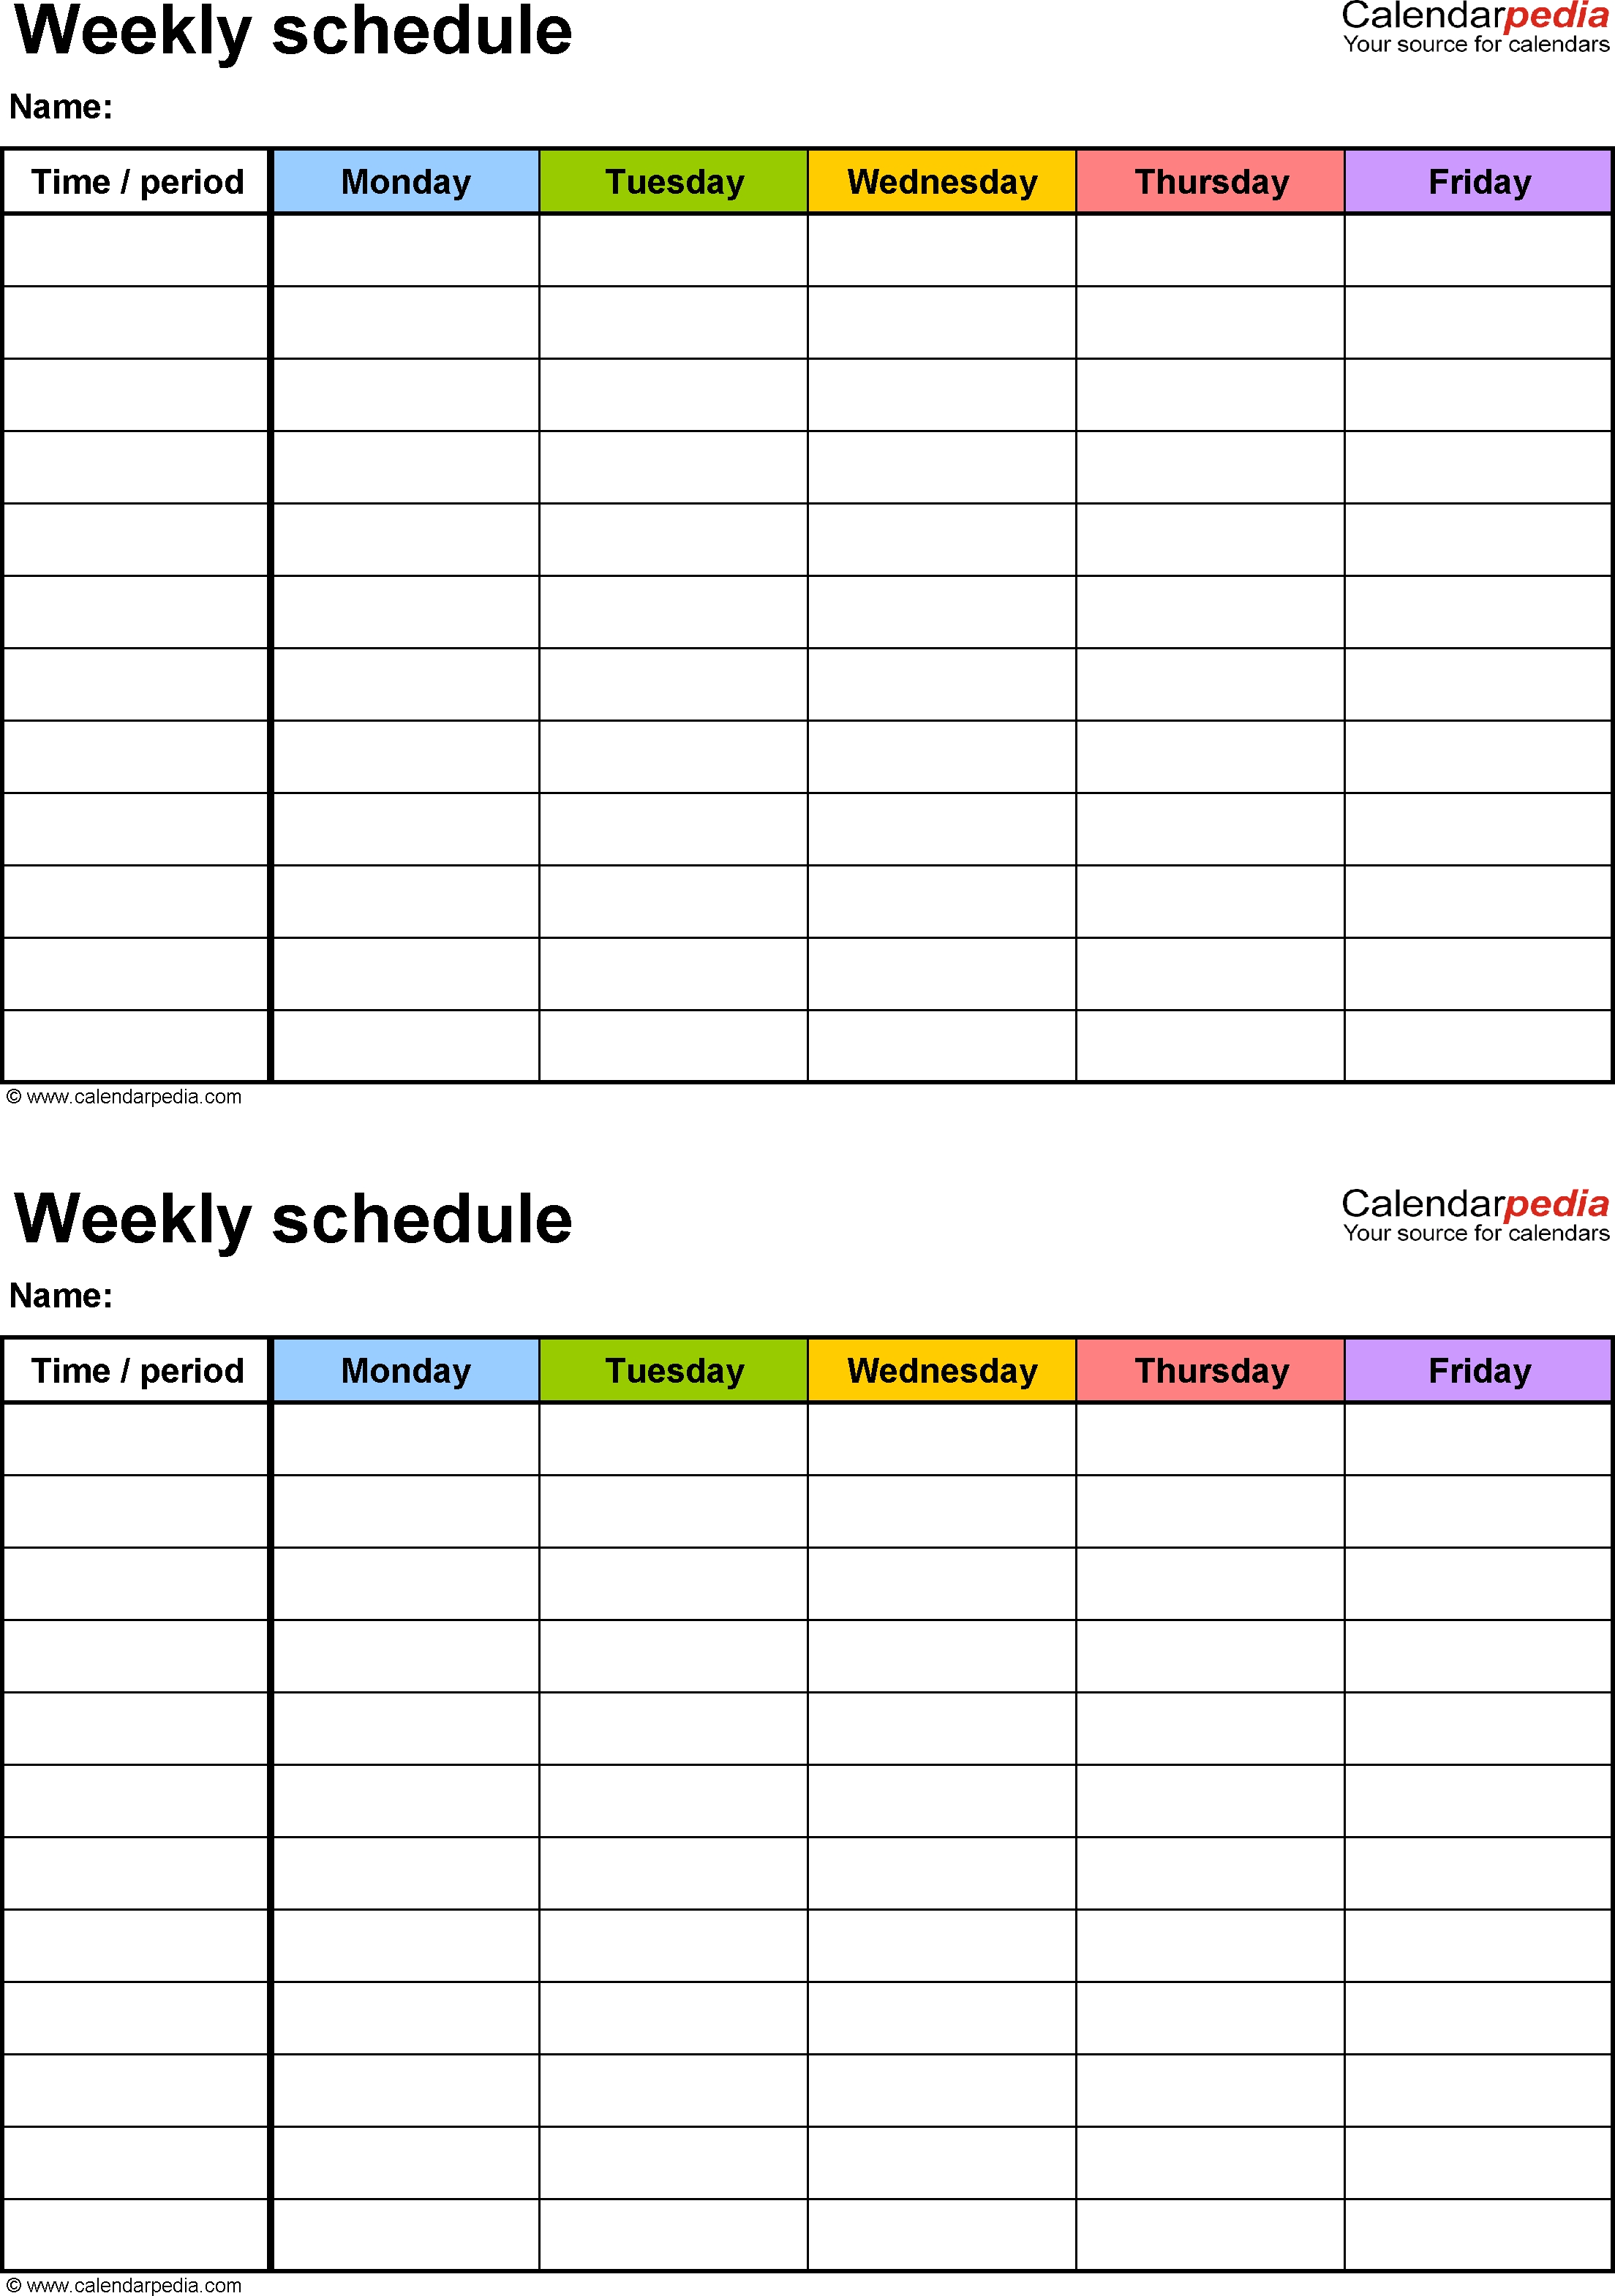 Weekly Schedule Template For Excel Version 3: 2 Schedules On One regarding Free Blank 5 Day Calendar